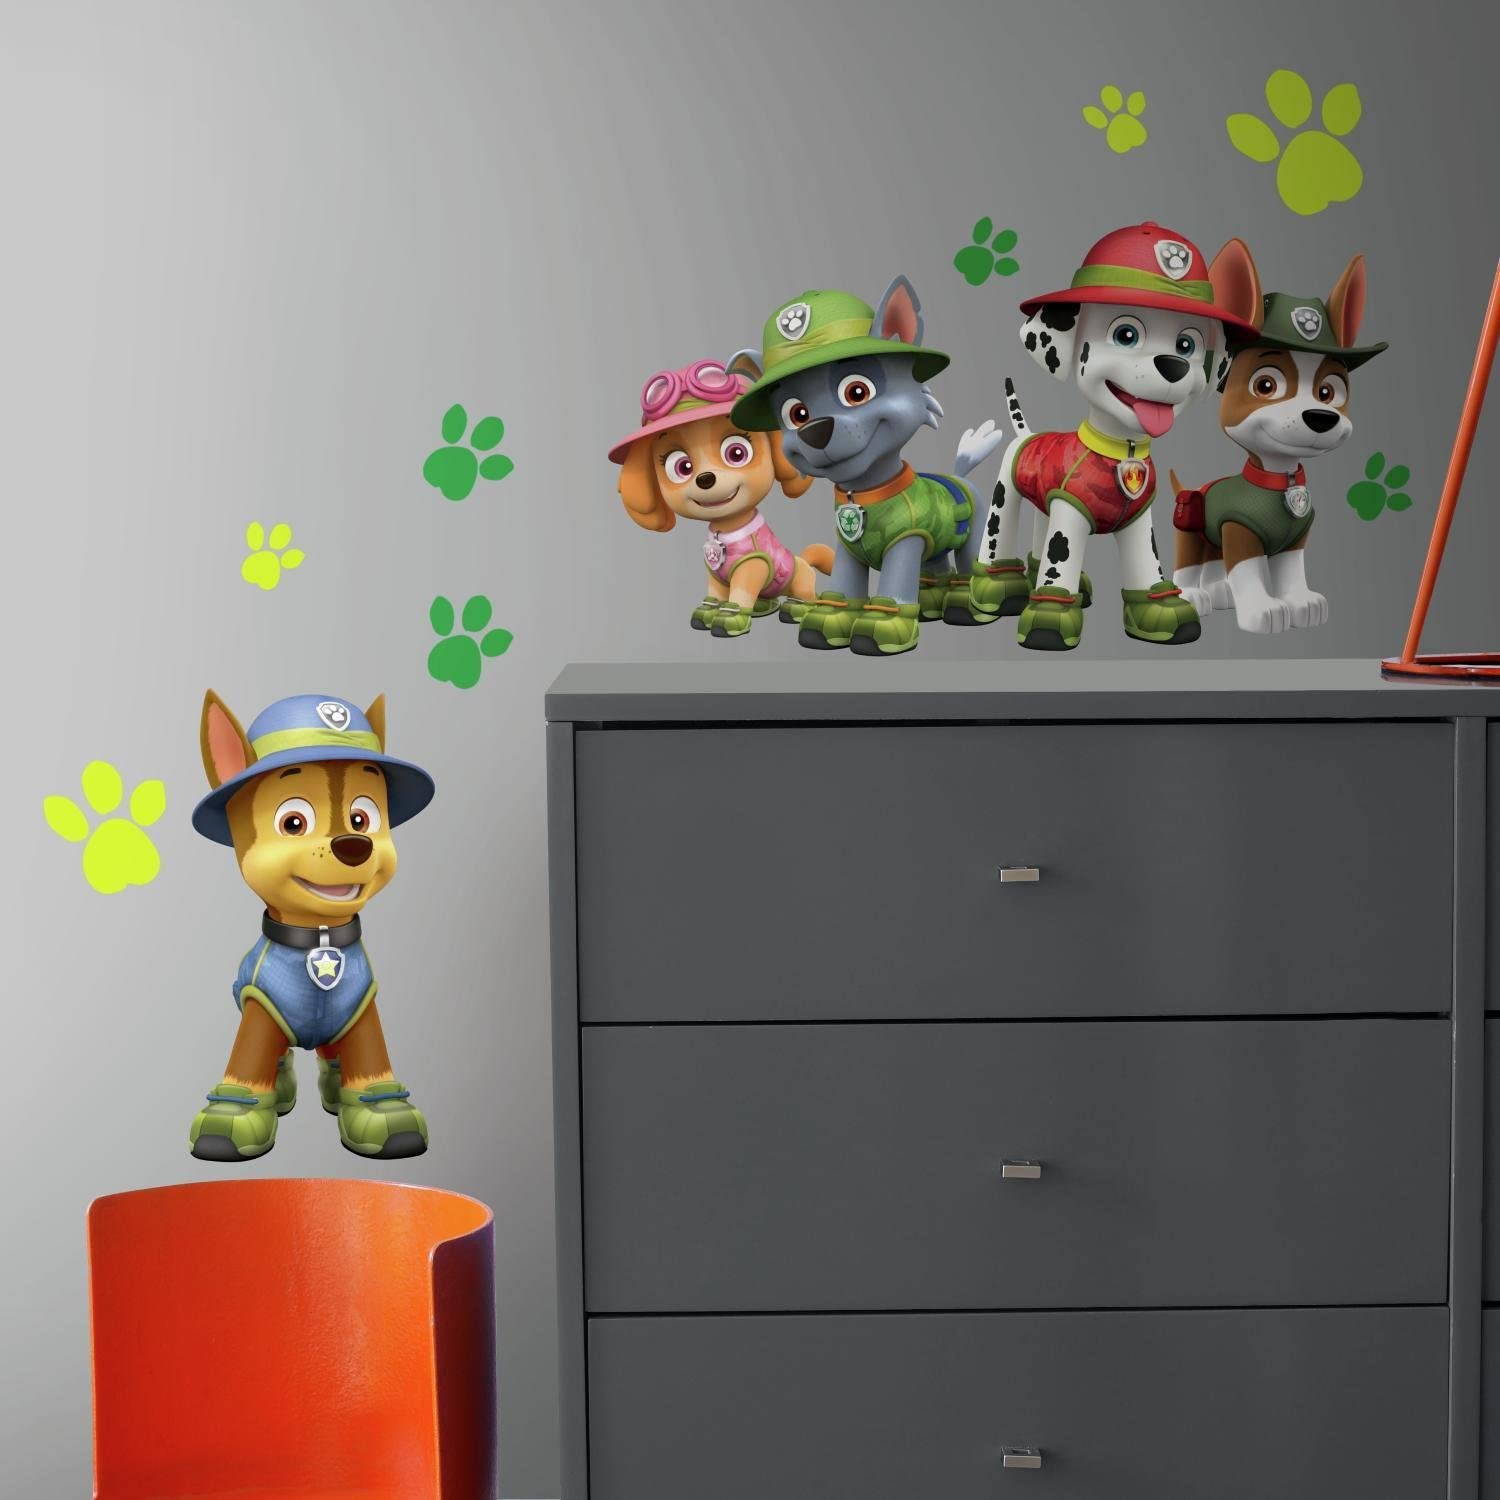 Nickelodeon - RMK3611GM RoomMates Paw Patrol Jungle Peel And Stick Giant Wall Decals,Multi